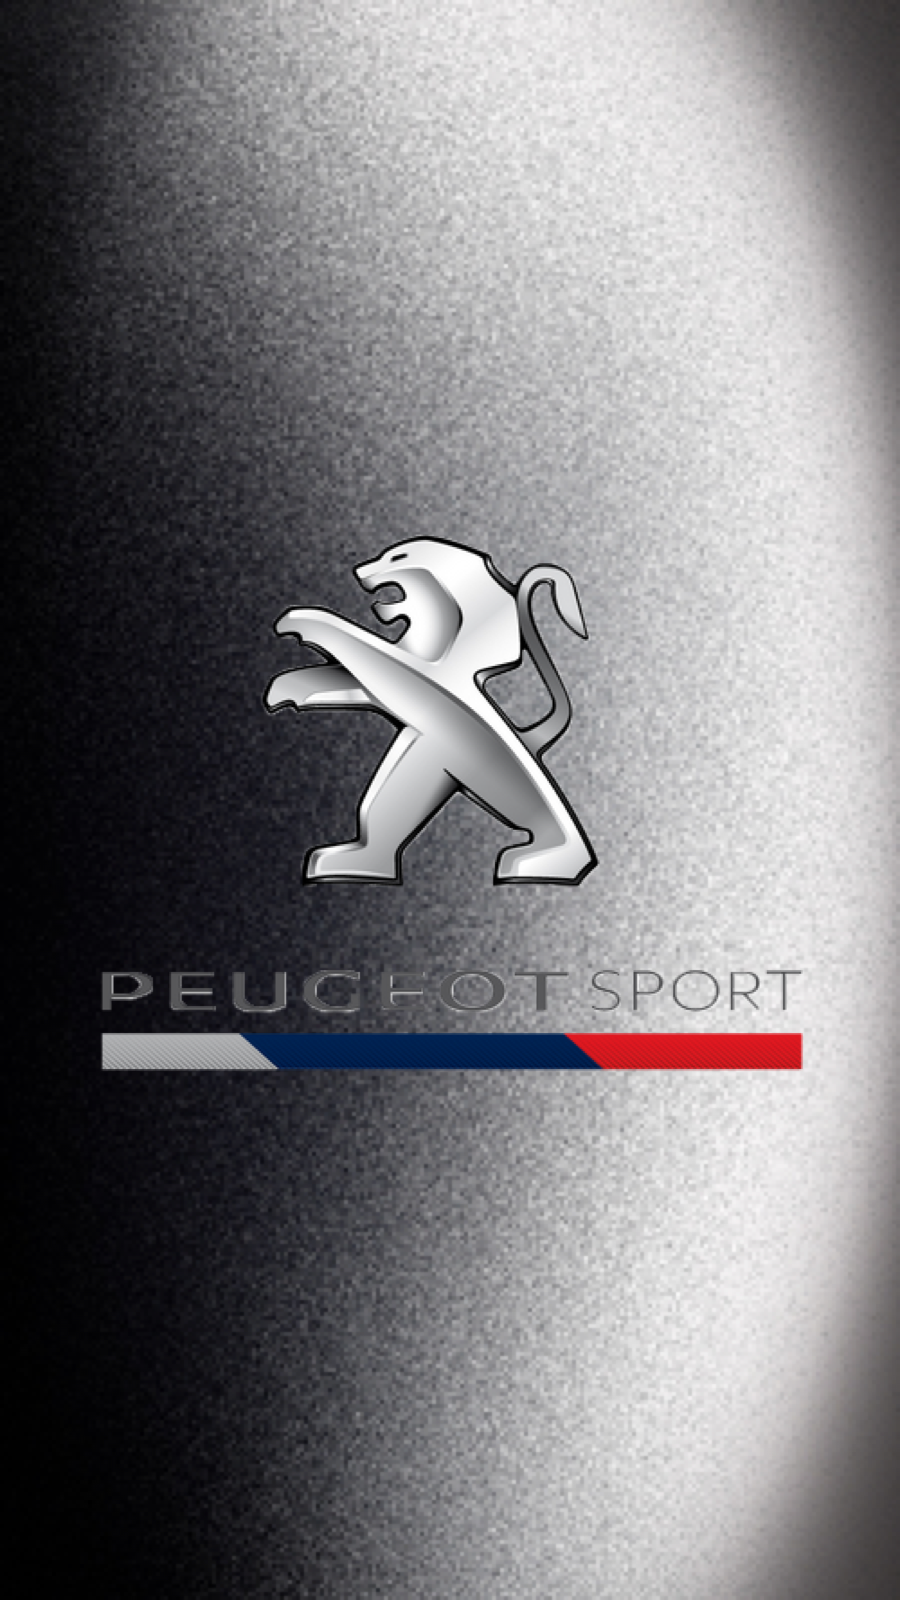 Pin By Amir On D Peugeot Iphone Wallpaper Wallpaper